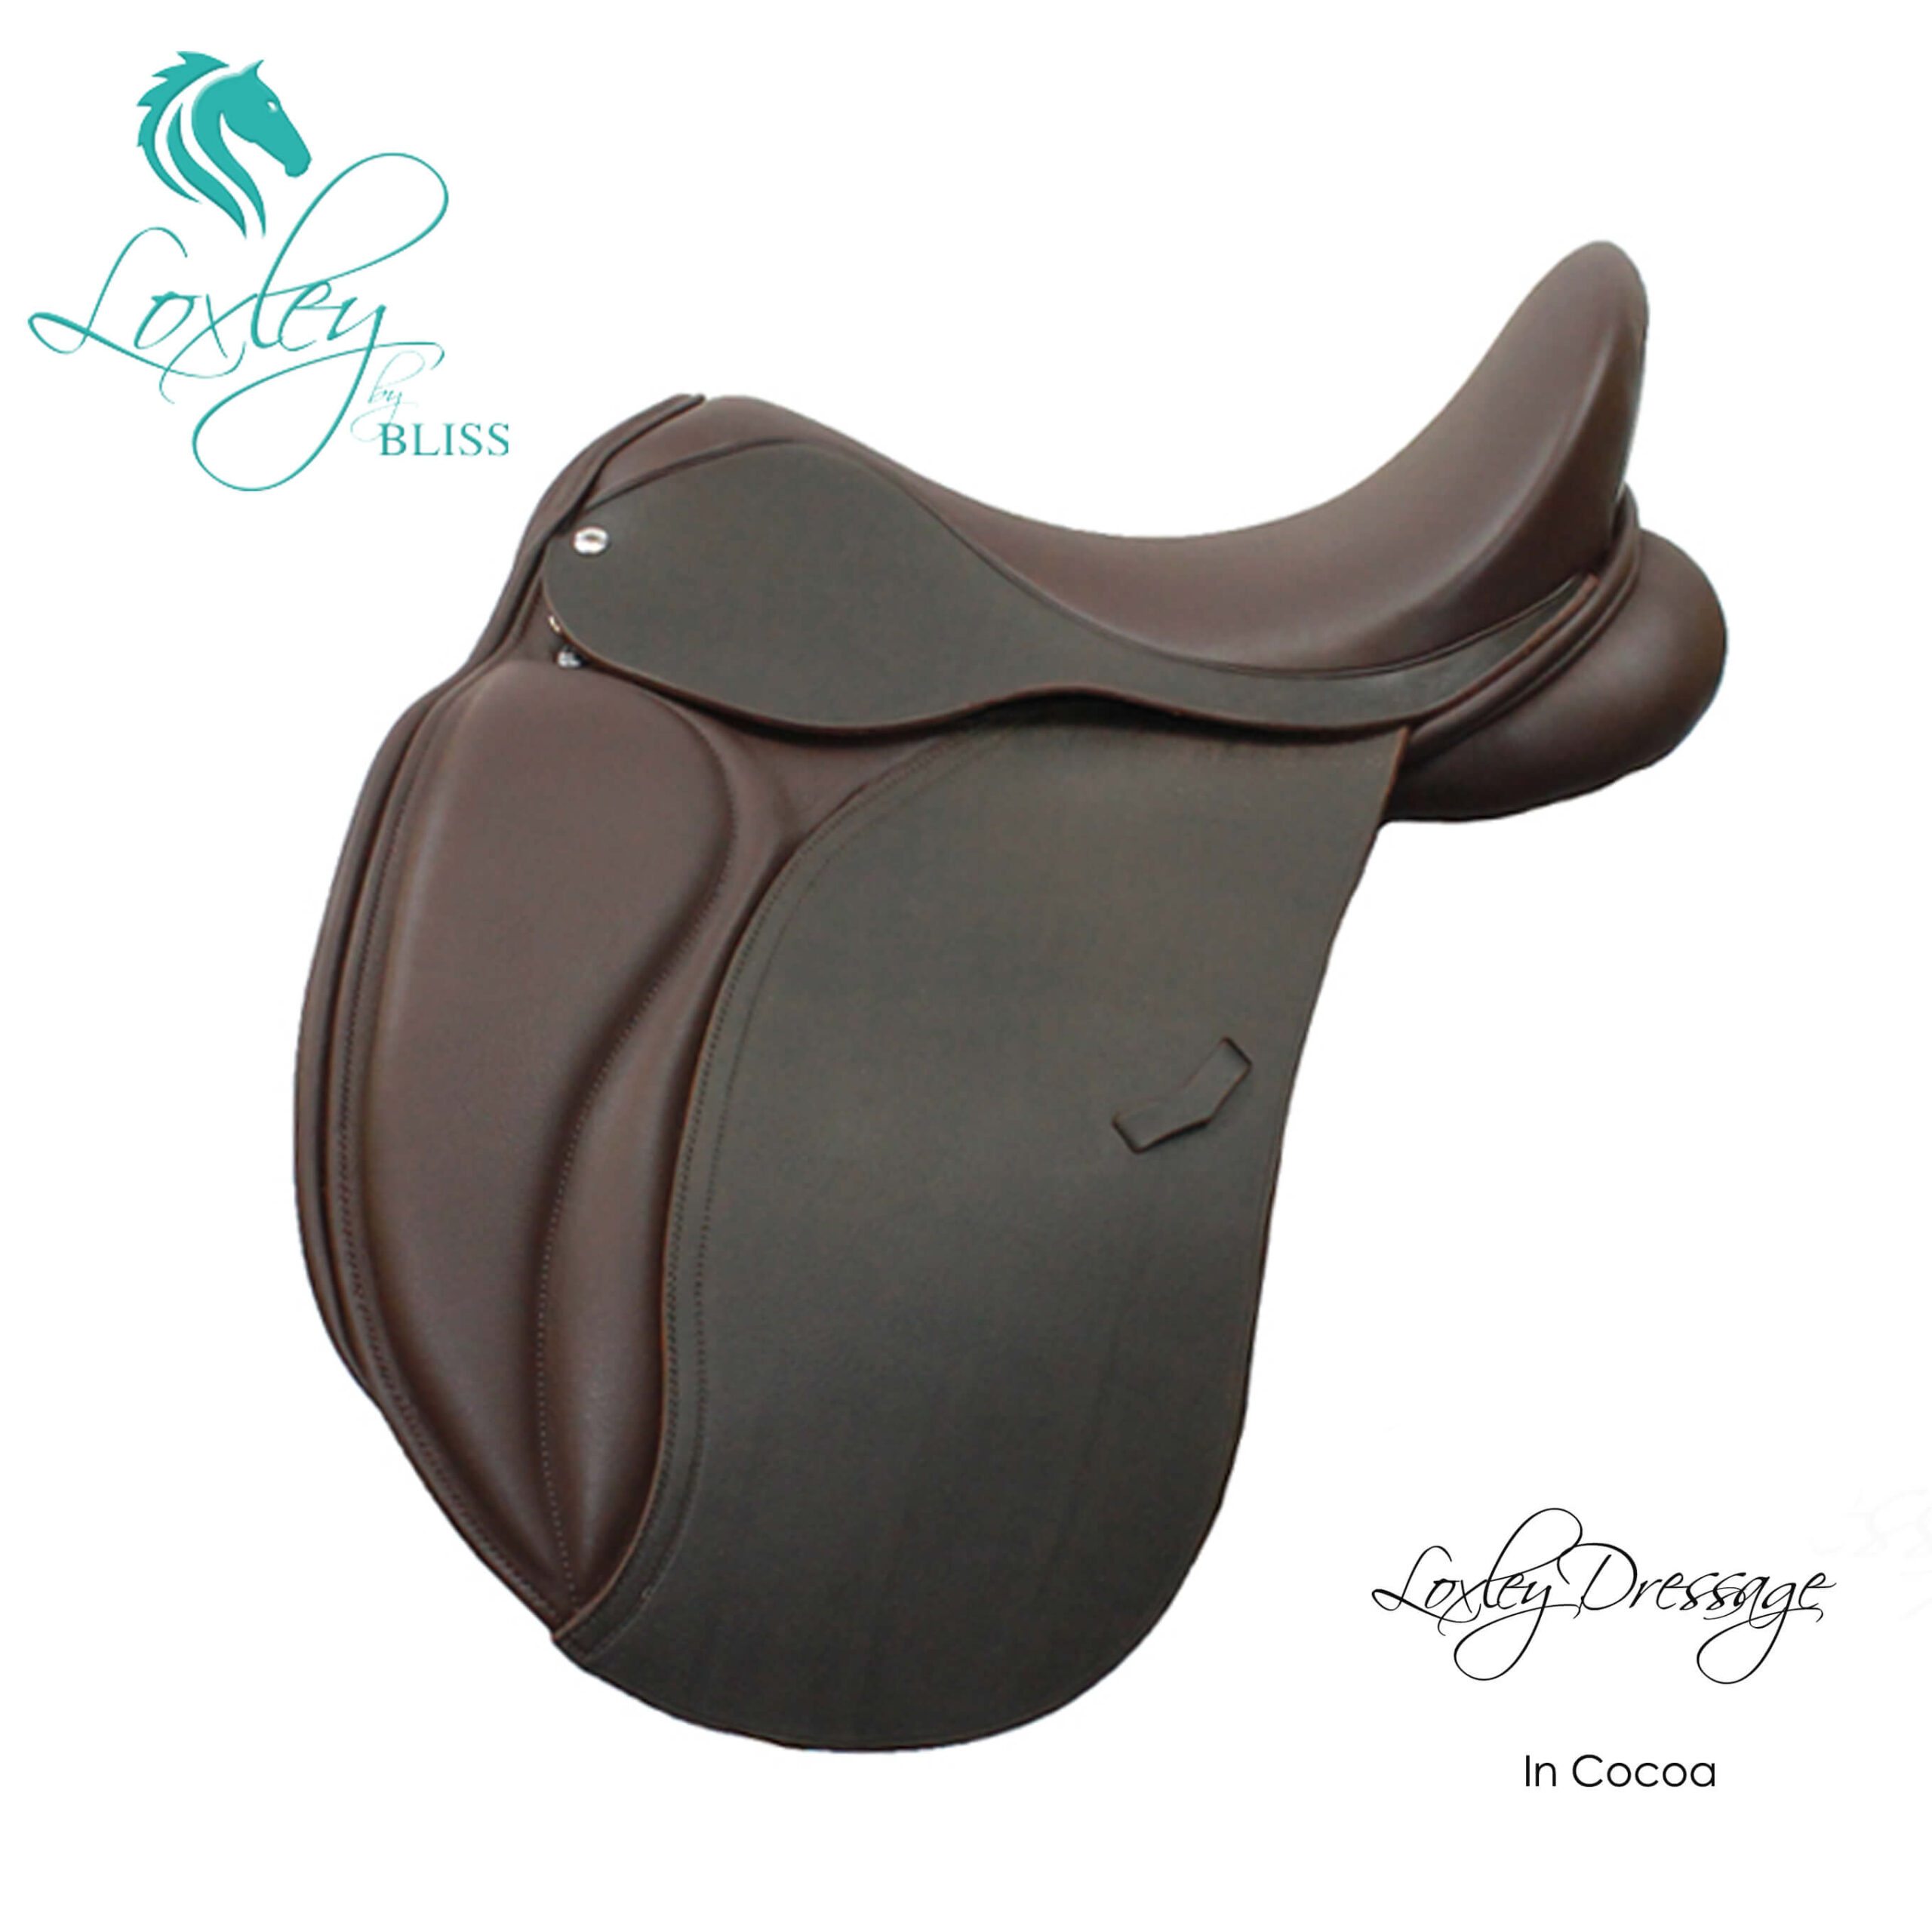 Loxley Dressage